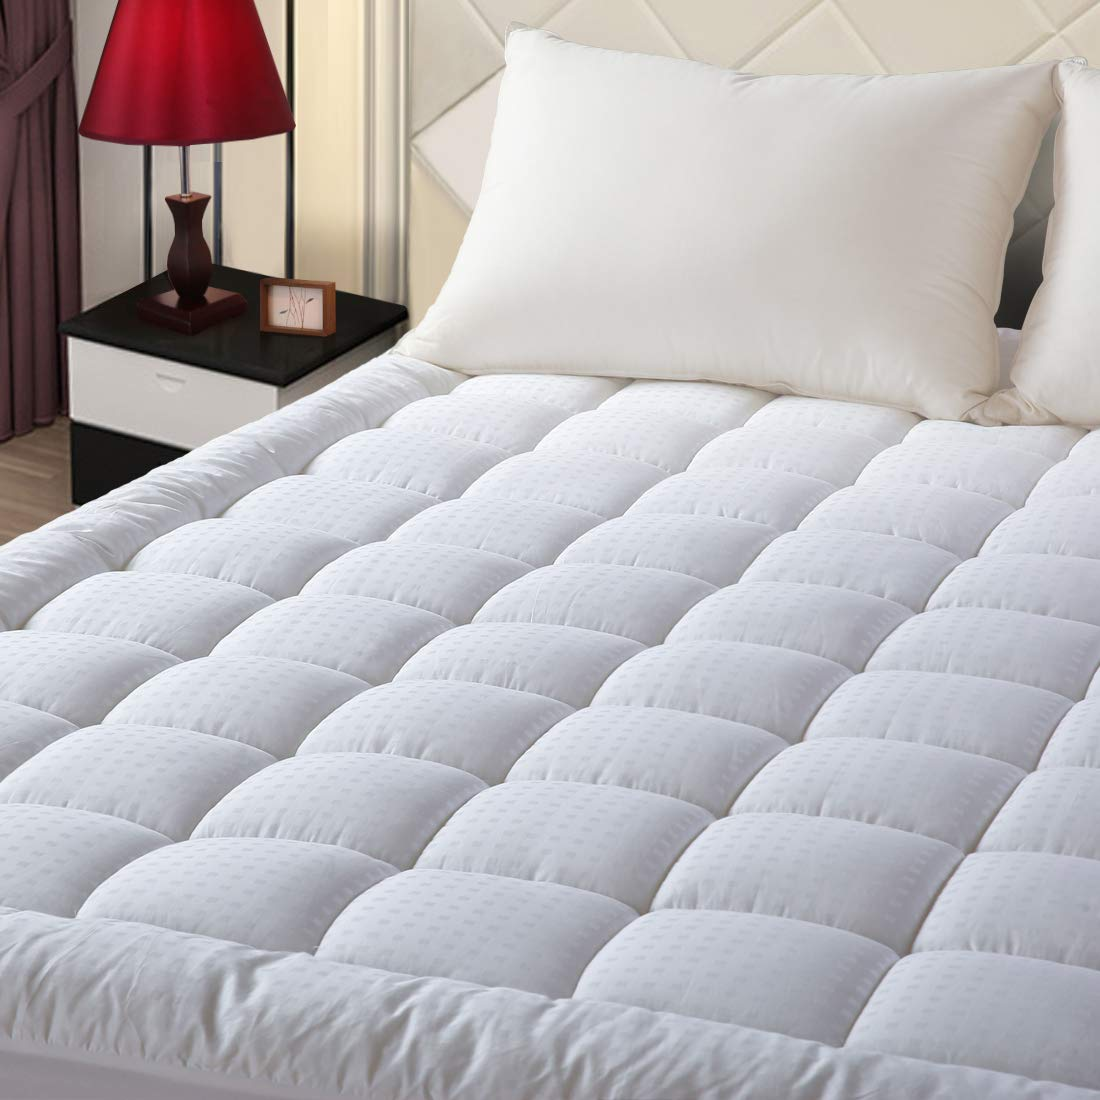 2. EASELAND Twin XL Mattress Cover